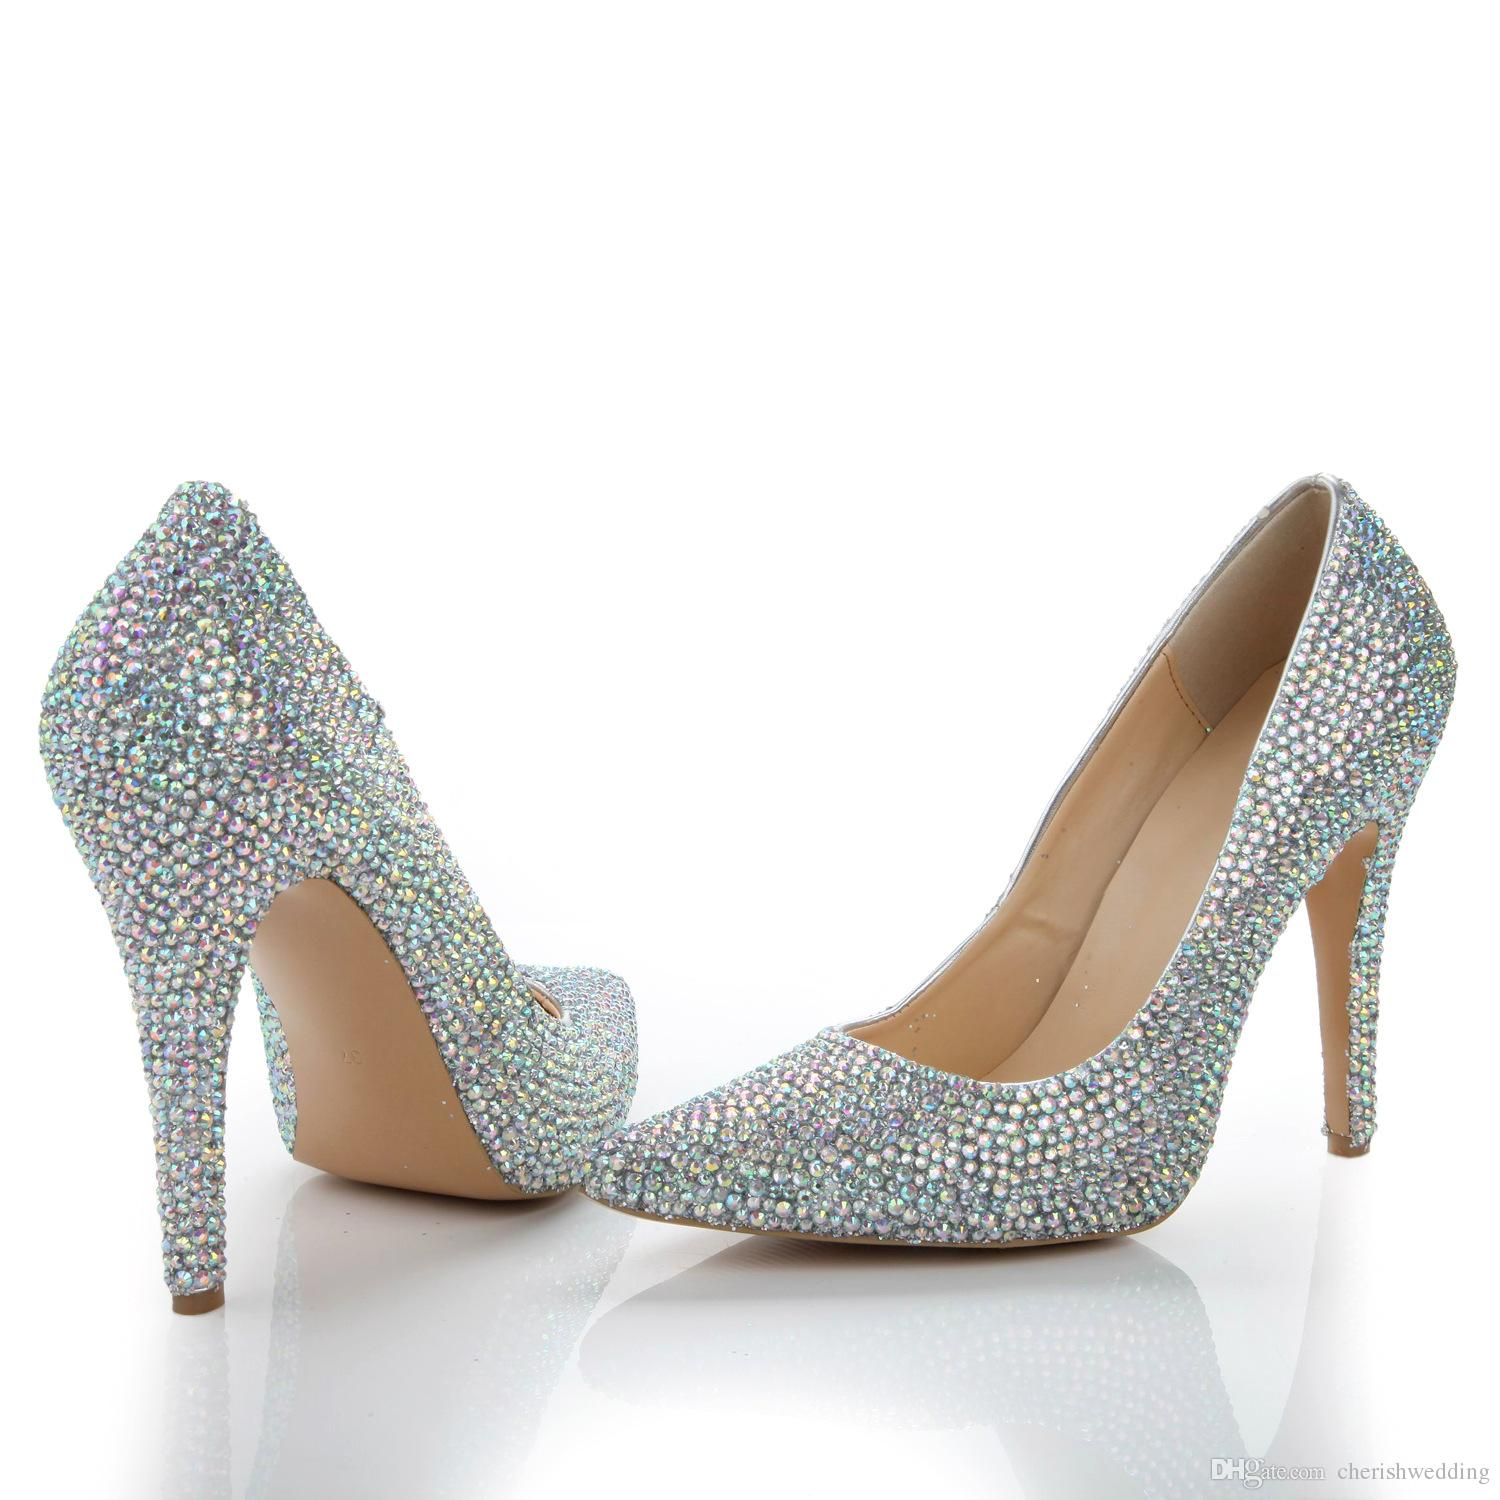 2017 New Wedding Shoes Silver 8CM Heel Sparkly Rhinestone Shoes Crystal  Cheap Price High Quality Bridal Shoe In Stock Wedding Wedges Blue Wedding  Shoes From ... 2c088d3977